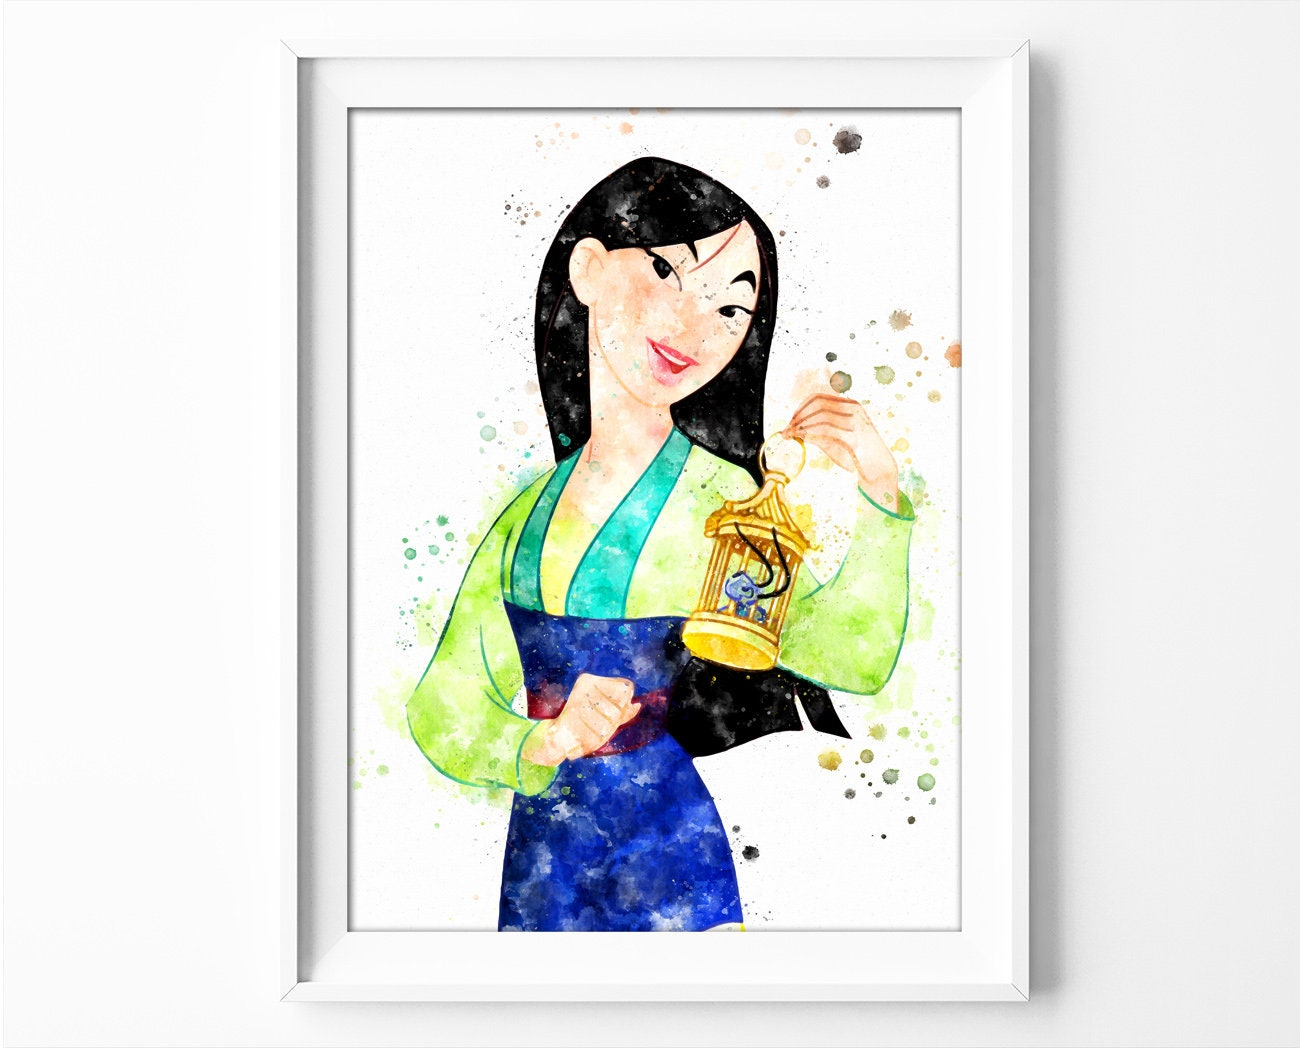 Walt Disney pictures Mulan drawing from Mulan with his Knight Khan poster art Digital watercolor effects sheet